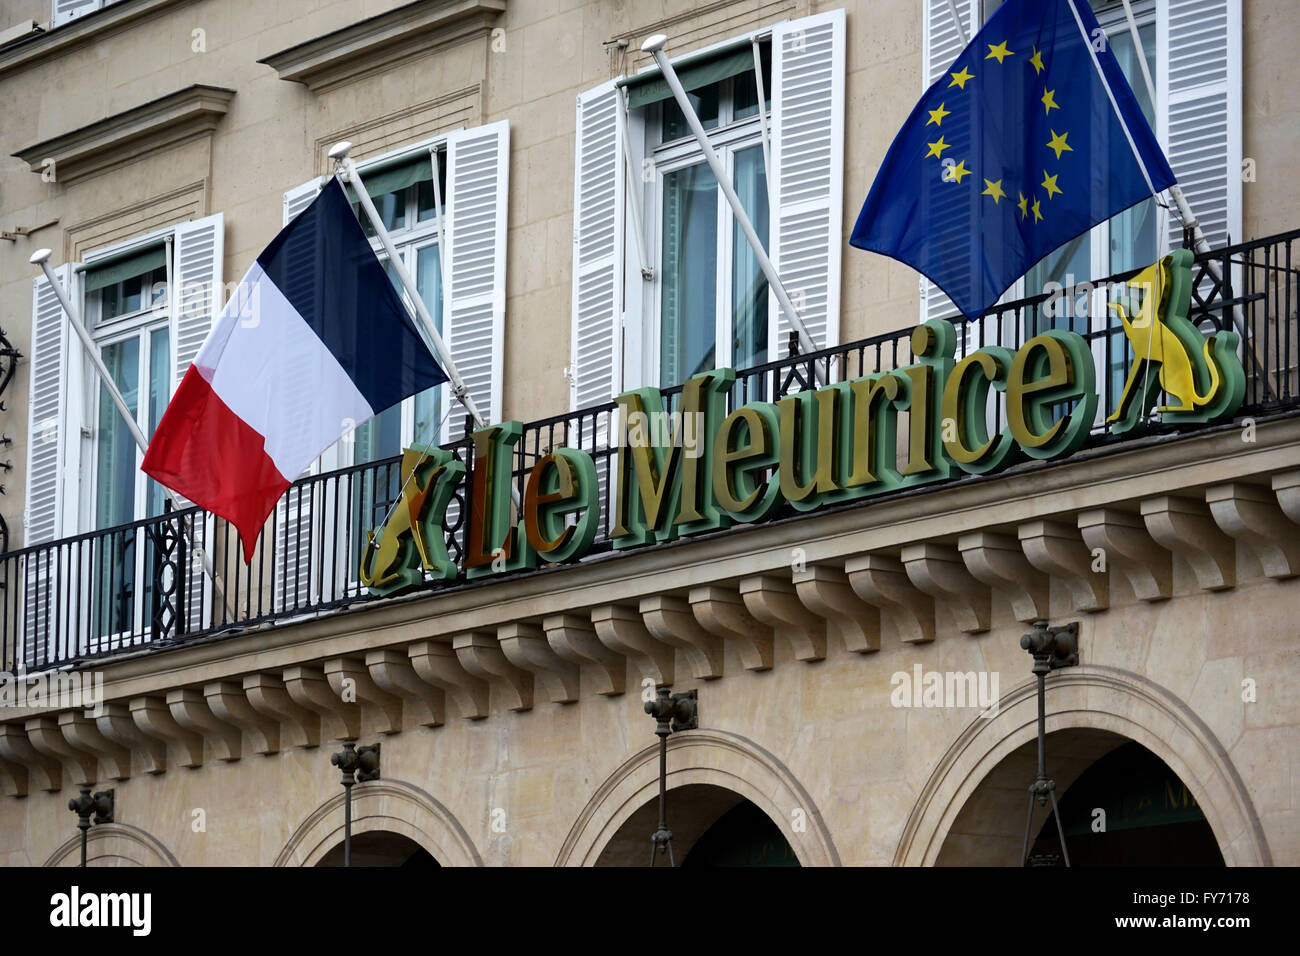 Hotel Le Meurice with French and European Union flags on Rue Rivoli,Paris France - Stock Image